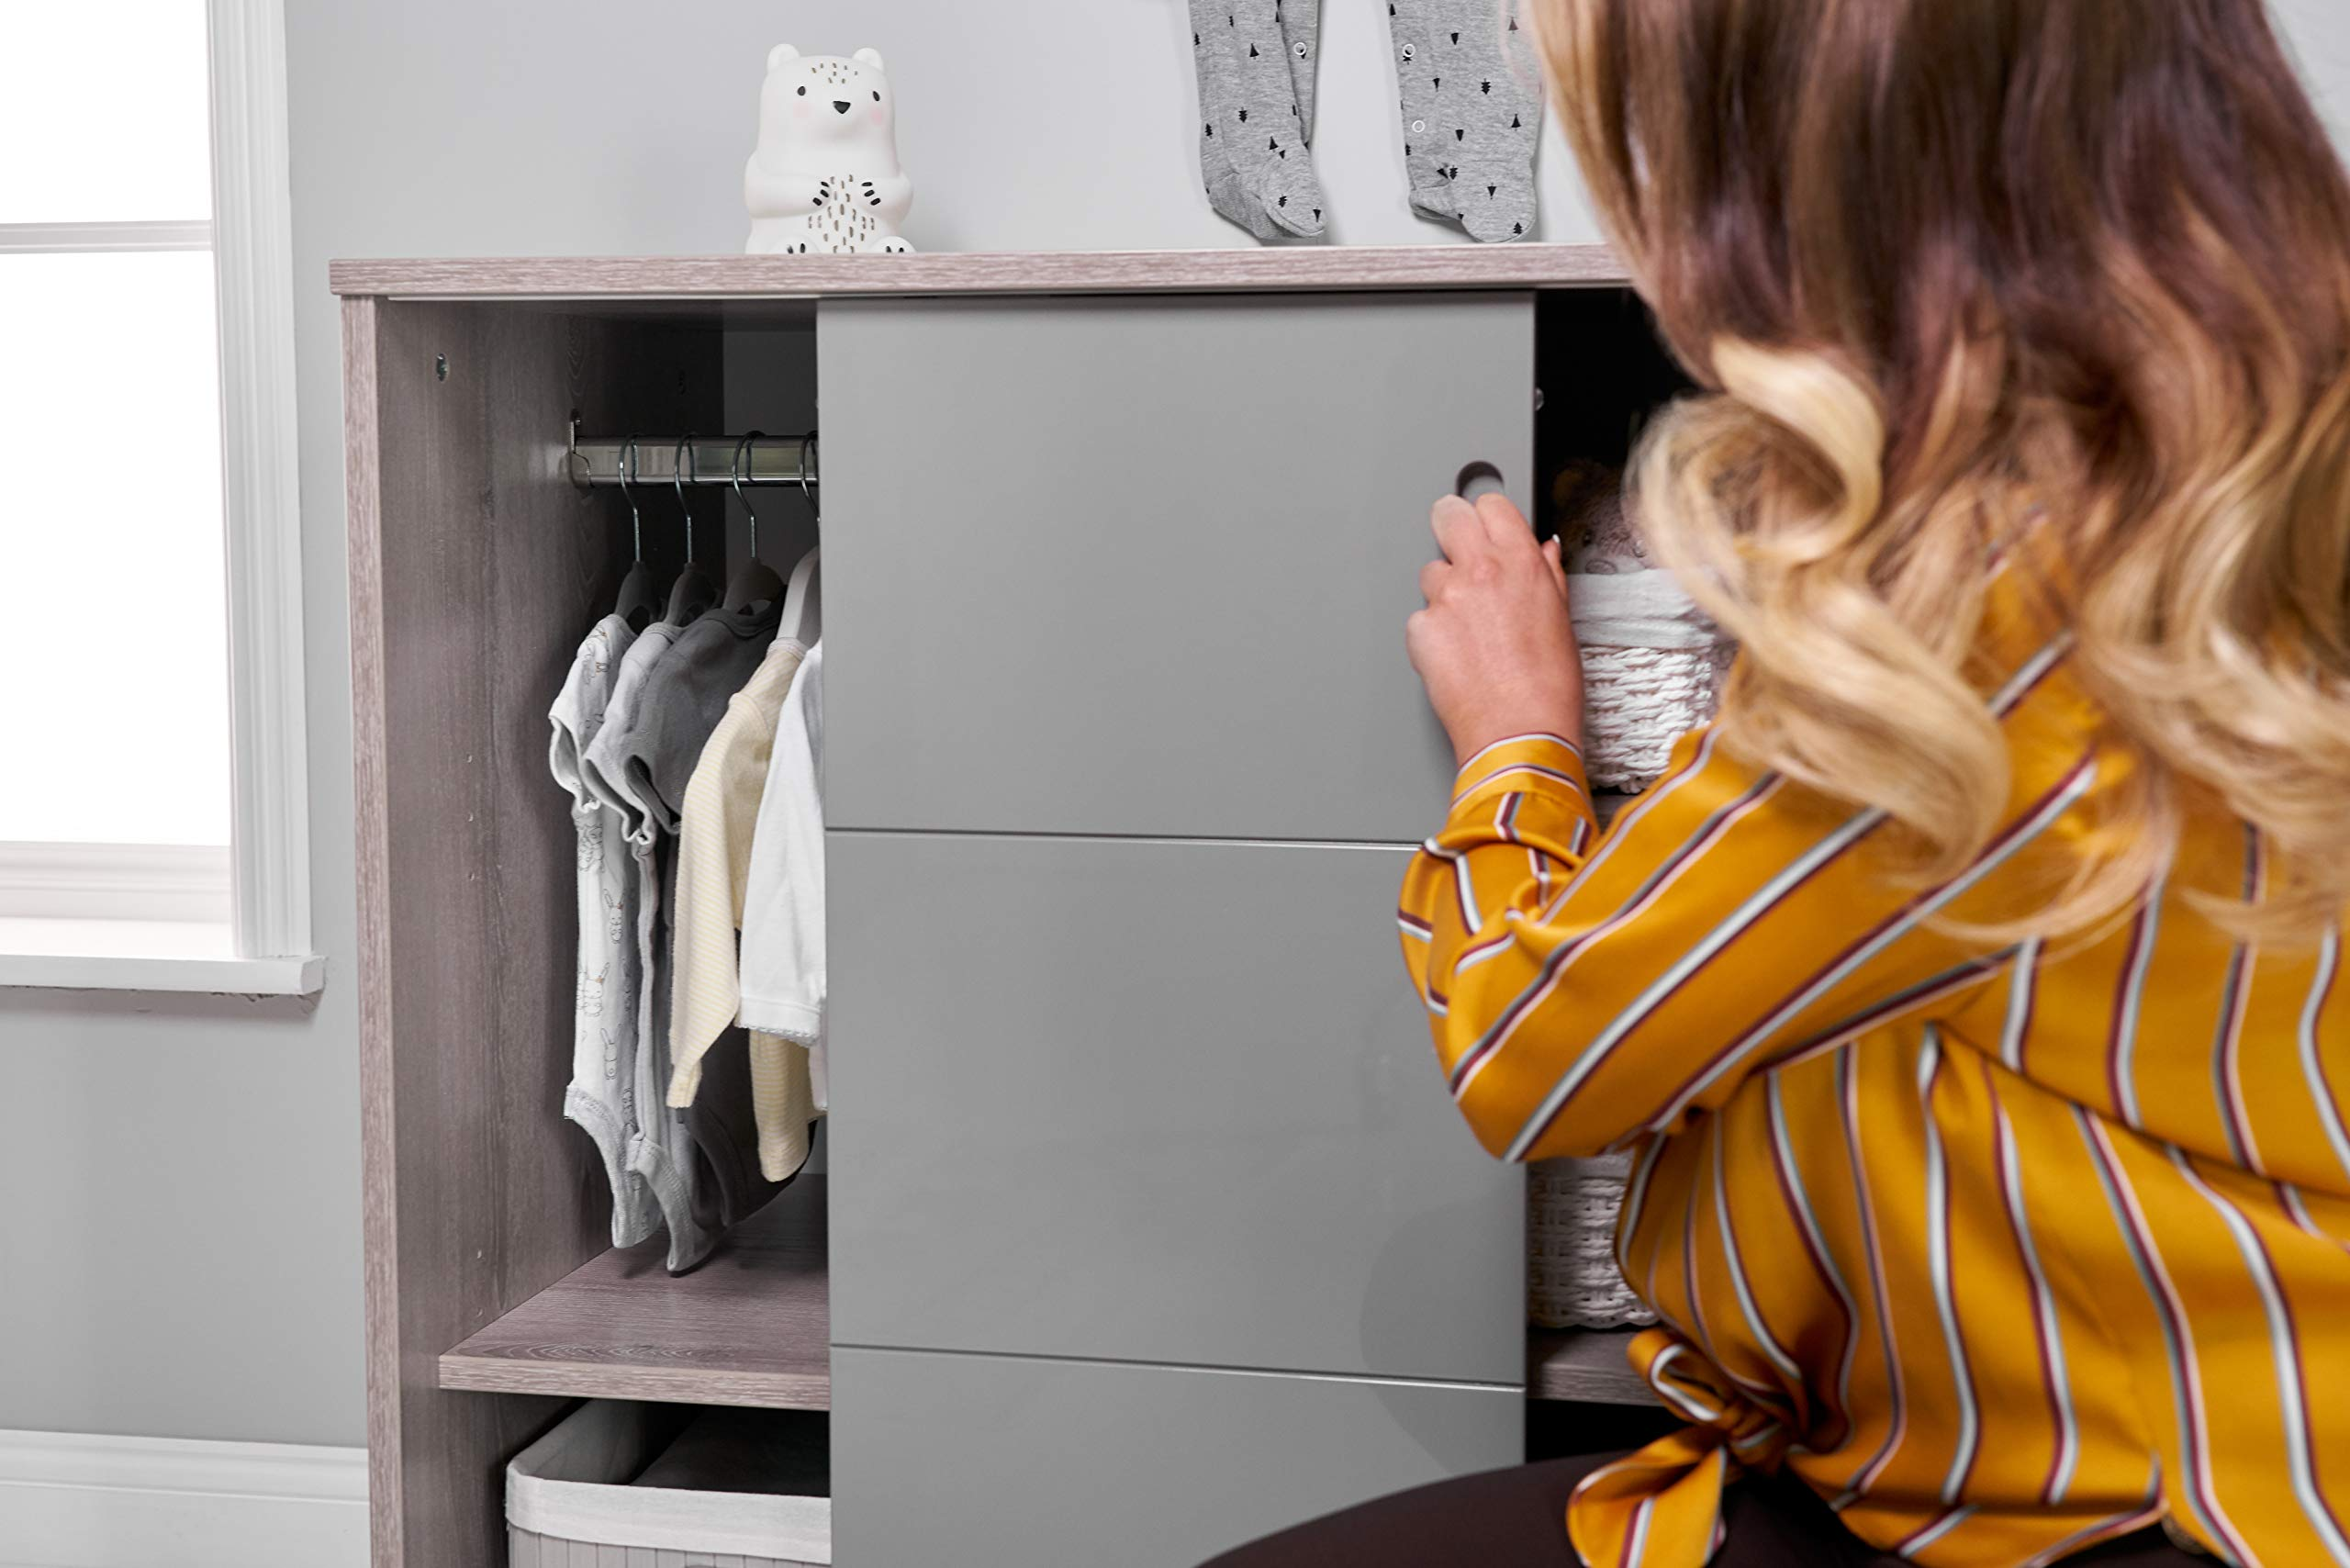 Obaby Madrid Storage Unit, Lunar Obaby Left side offers the option of a hanging rail and shelf or three shelves Right side has 3 fixed shelves Option to add the removable changing top to turn into a changing unit 7